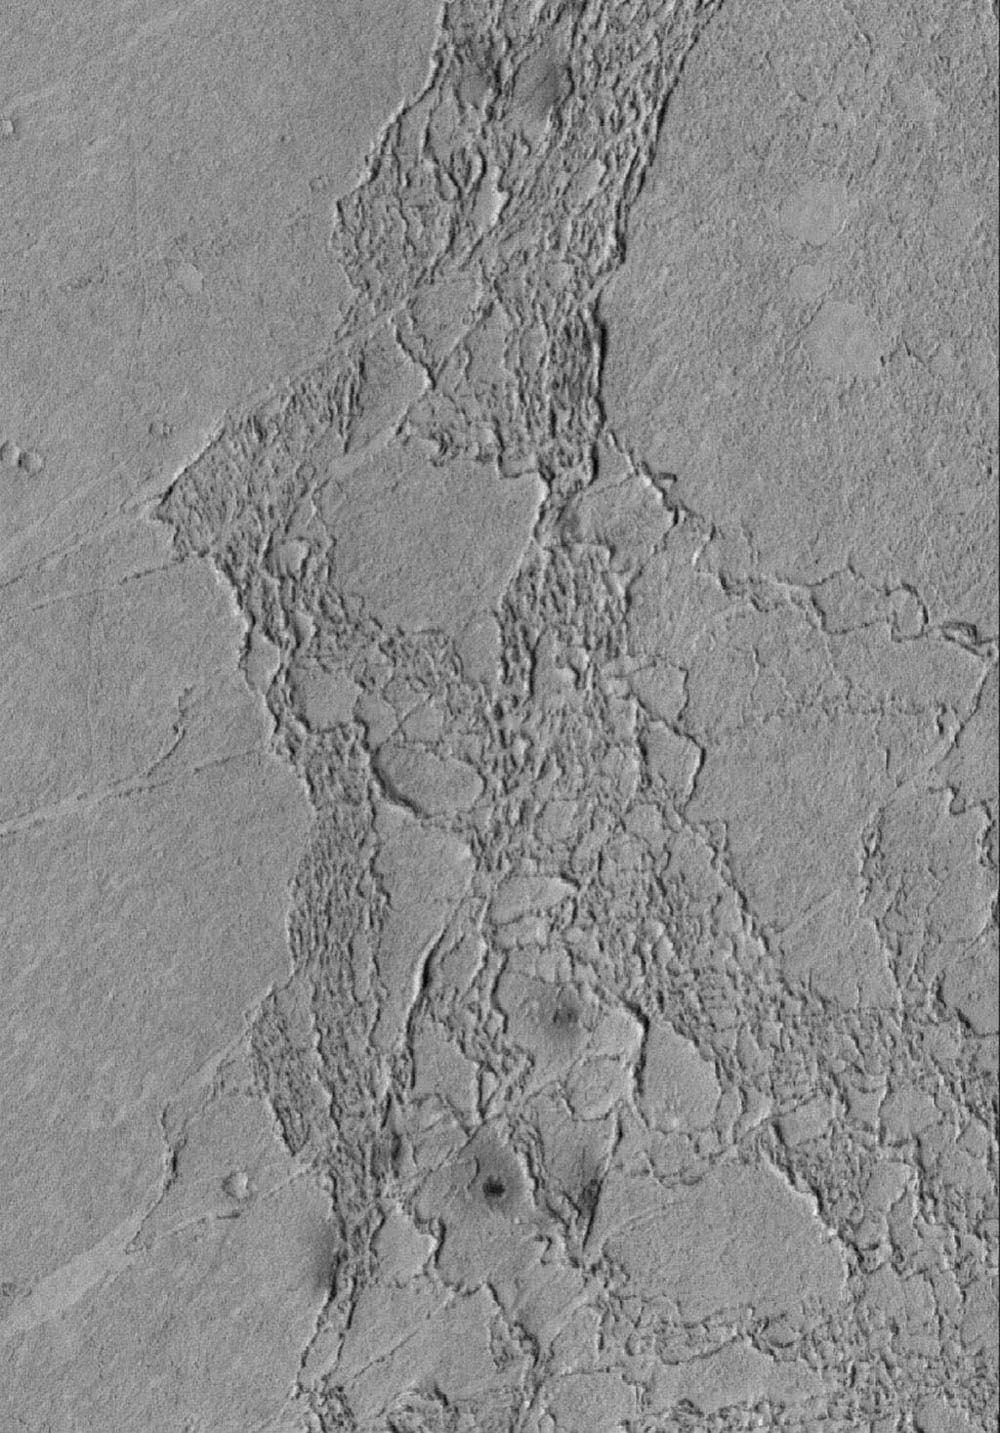 NASA's Mars Global Surveyor shows some of the platy flow material in the Zephyria region of Mars. The materials have impact craters in them, suggesting that they are composed of solid rock rather than ice.